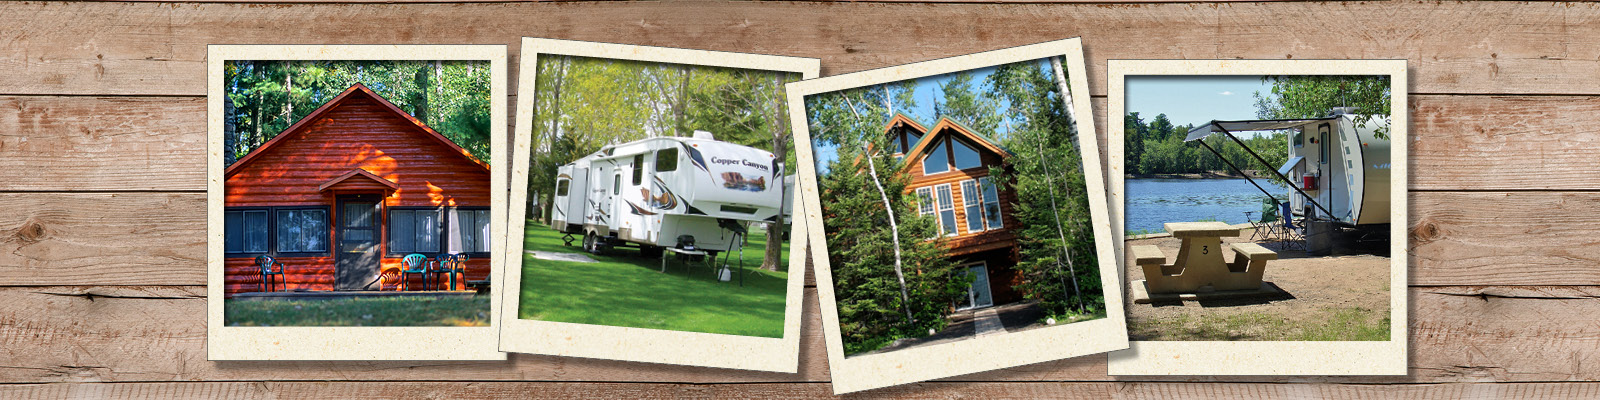 2Annes Lakeside RV Park